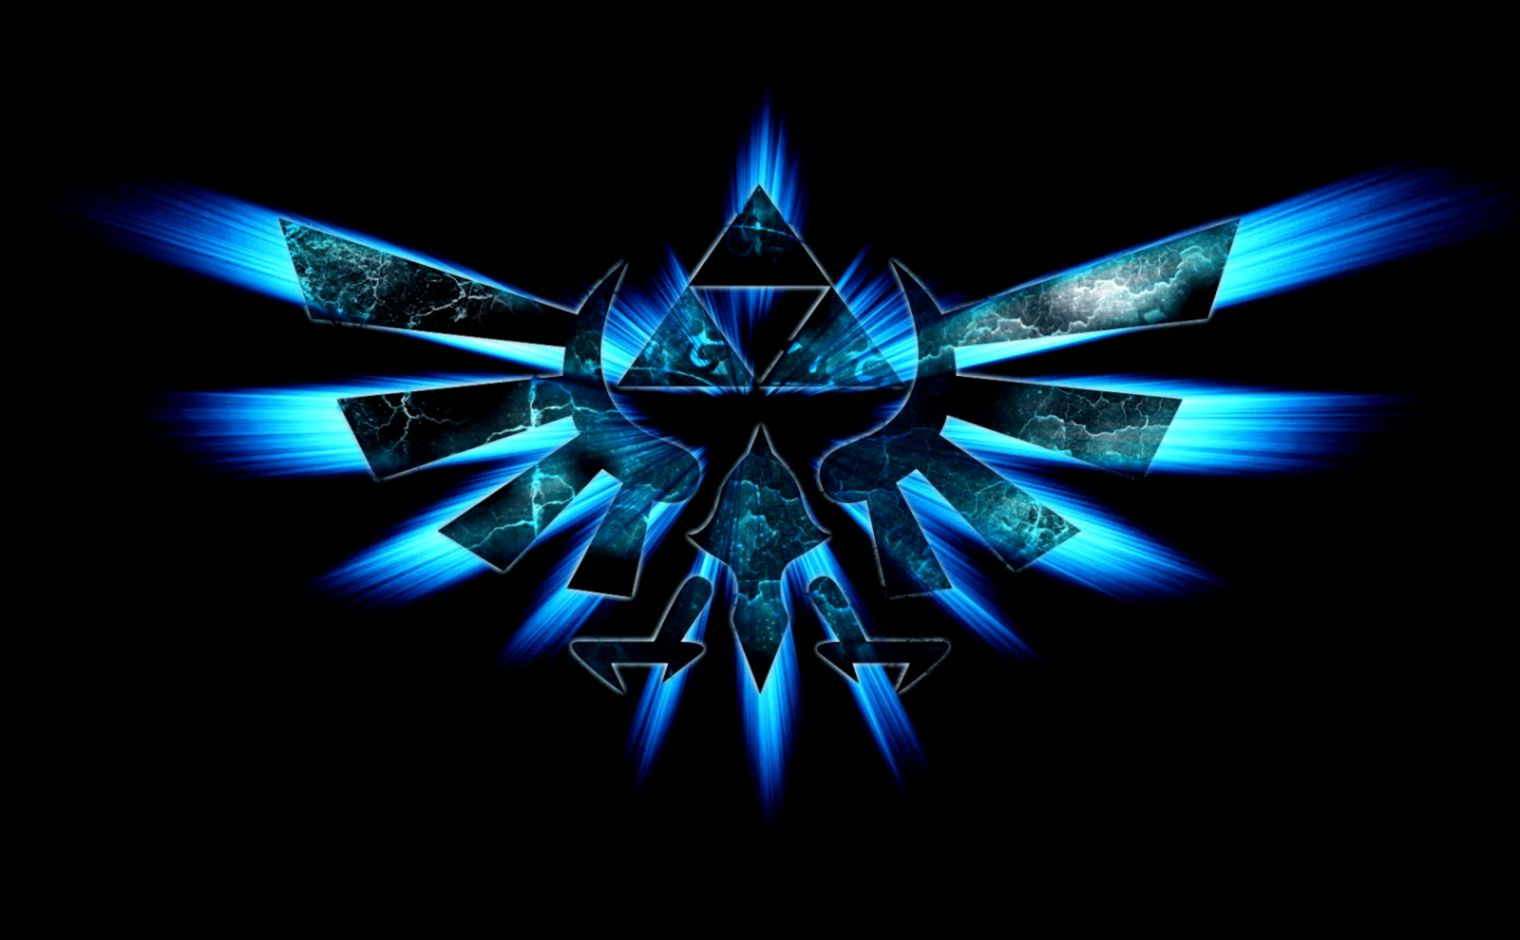 Cool Blue Wallpaper Designs Hd | Wallpapers Gallery